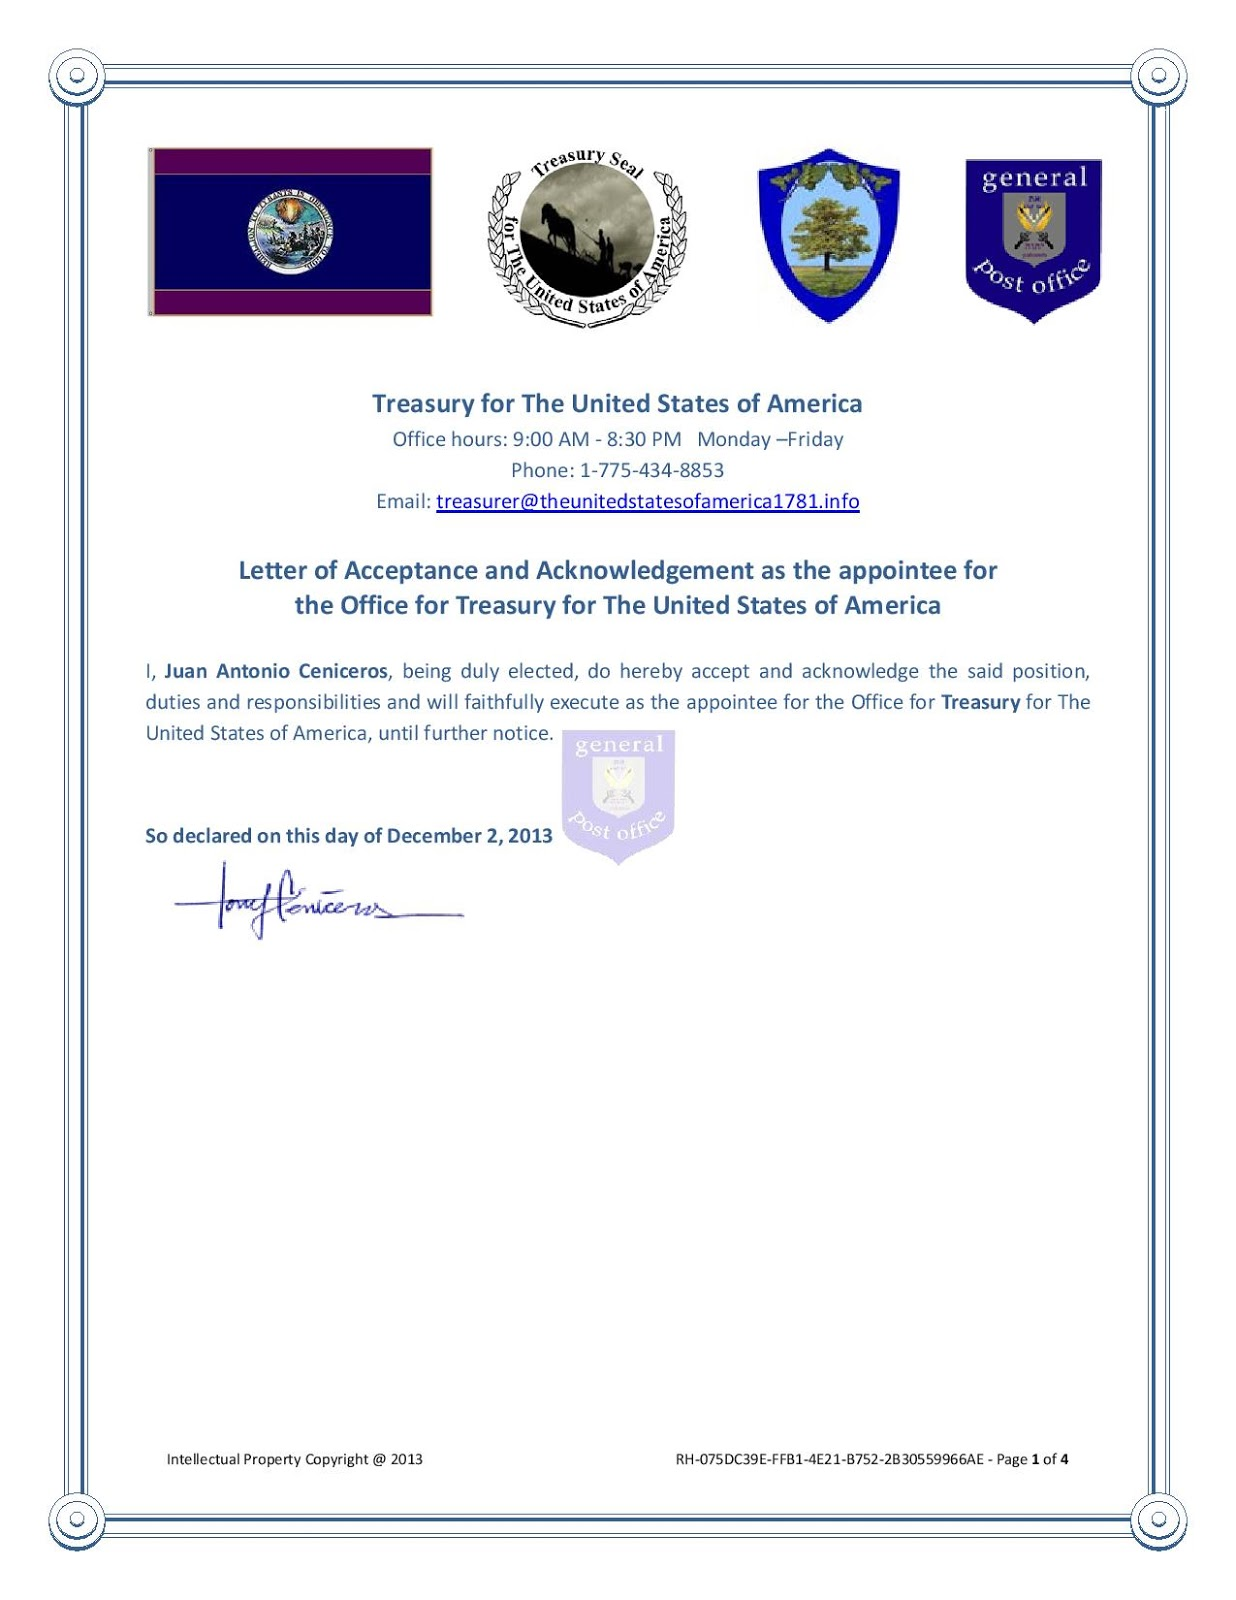 The office of the Treasury for the Government of The United States of America hereby introduces its newest version of its legal tender! Juan-Antonio-Ceniceros-Acceptance-and-Acknowledgement-Treasury-page-001